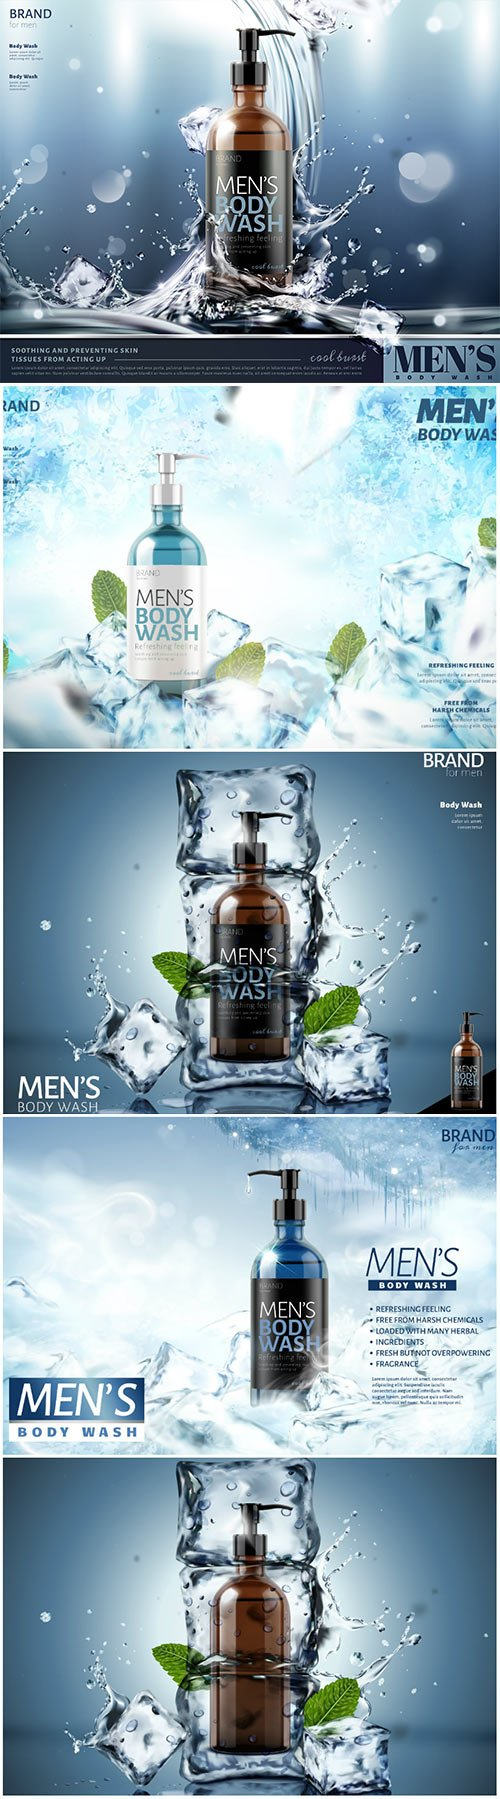 Men's body wash vector poster ads with splashing water and ice cubes in 3d illustration